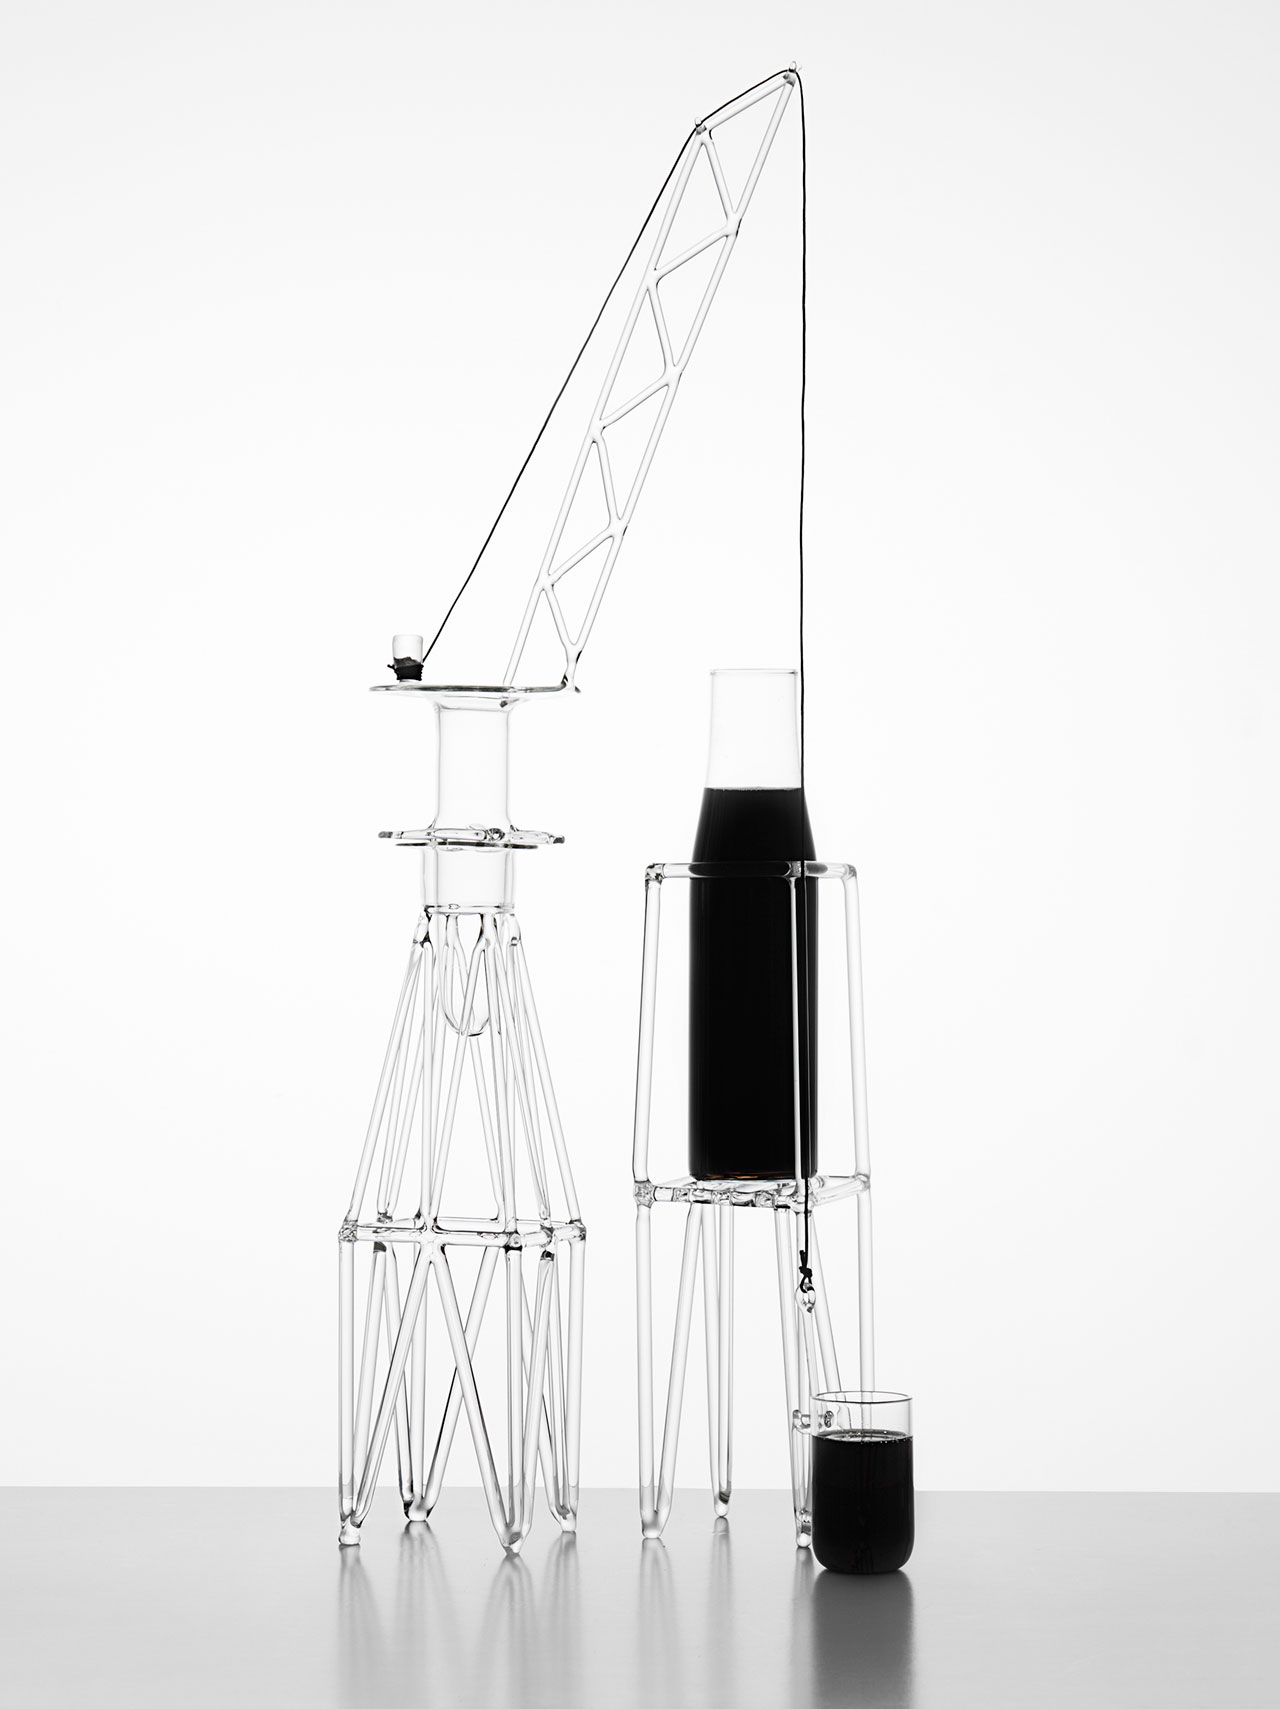 MAR_GH'ERA by Andrea Trimarchi and Simone Farresin from Studio Formafantasma for the DRAWING GLASS by Fabrica x ARTDESIGN exhibit curated by Euroinnovators, co-produced by Le5Vie cultural association and D33 (holder of the Venice Design Week brand).